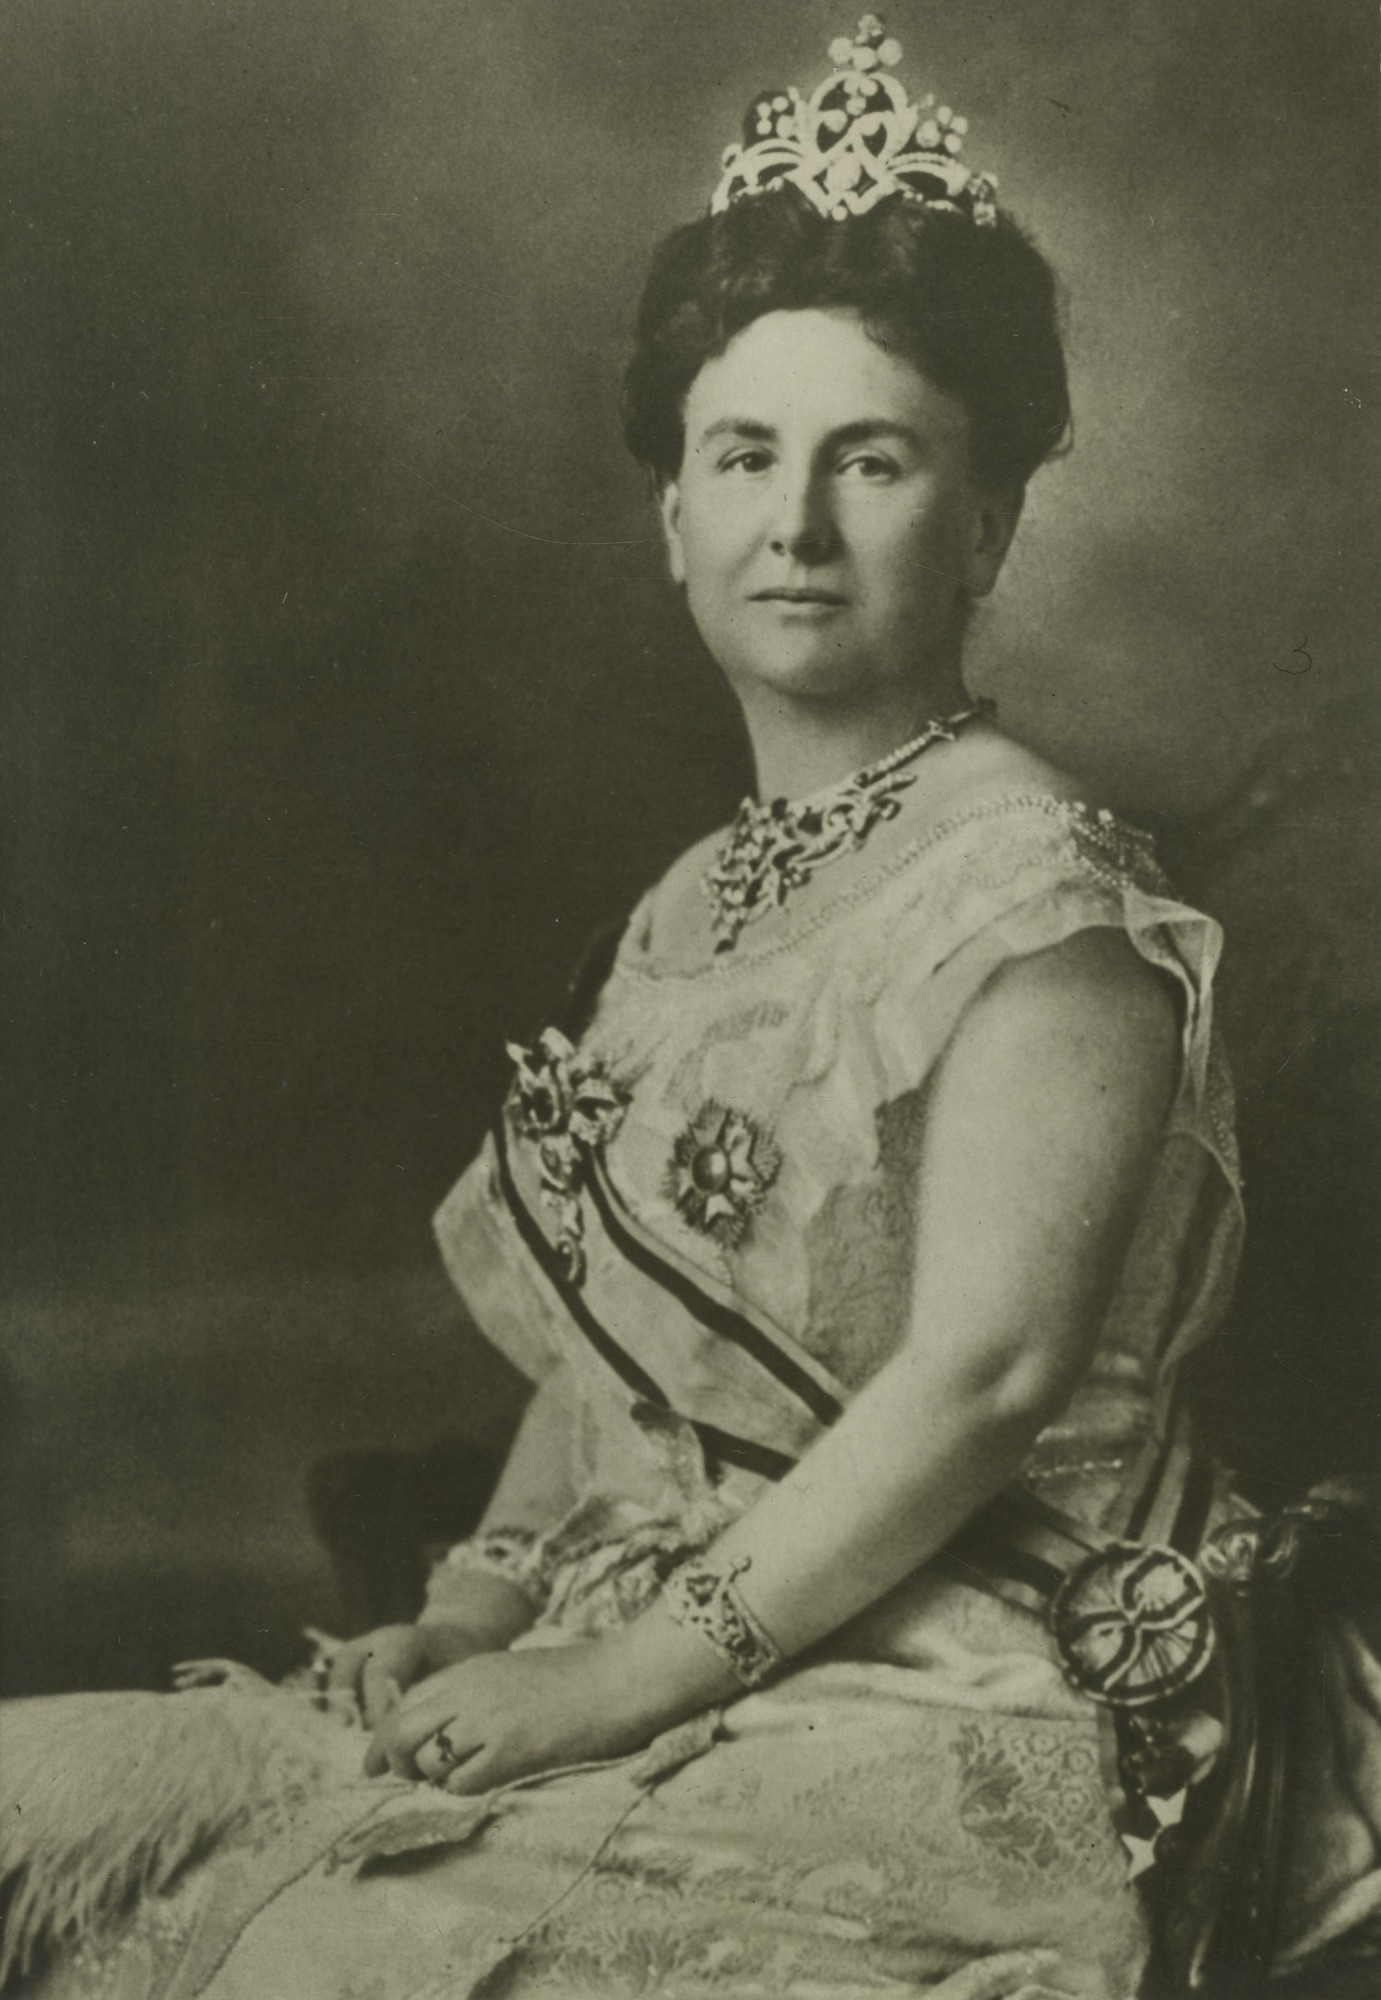 Queen Wilhelmina (1880-1962), 1922, Smithsonian Institution Archives, SIA Acc. 90-105 [SIA2010-1228].